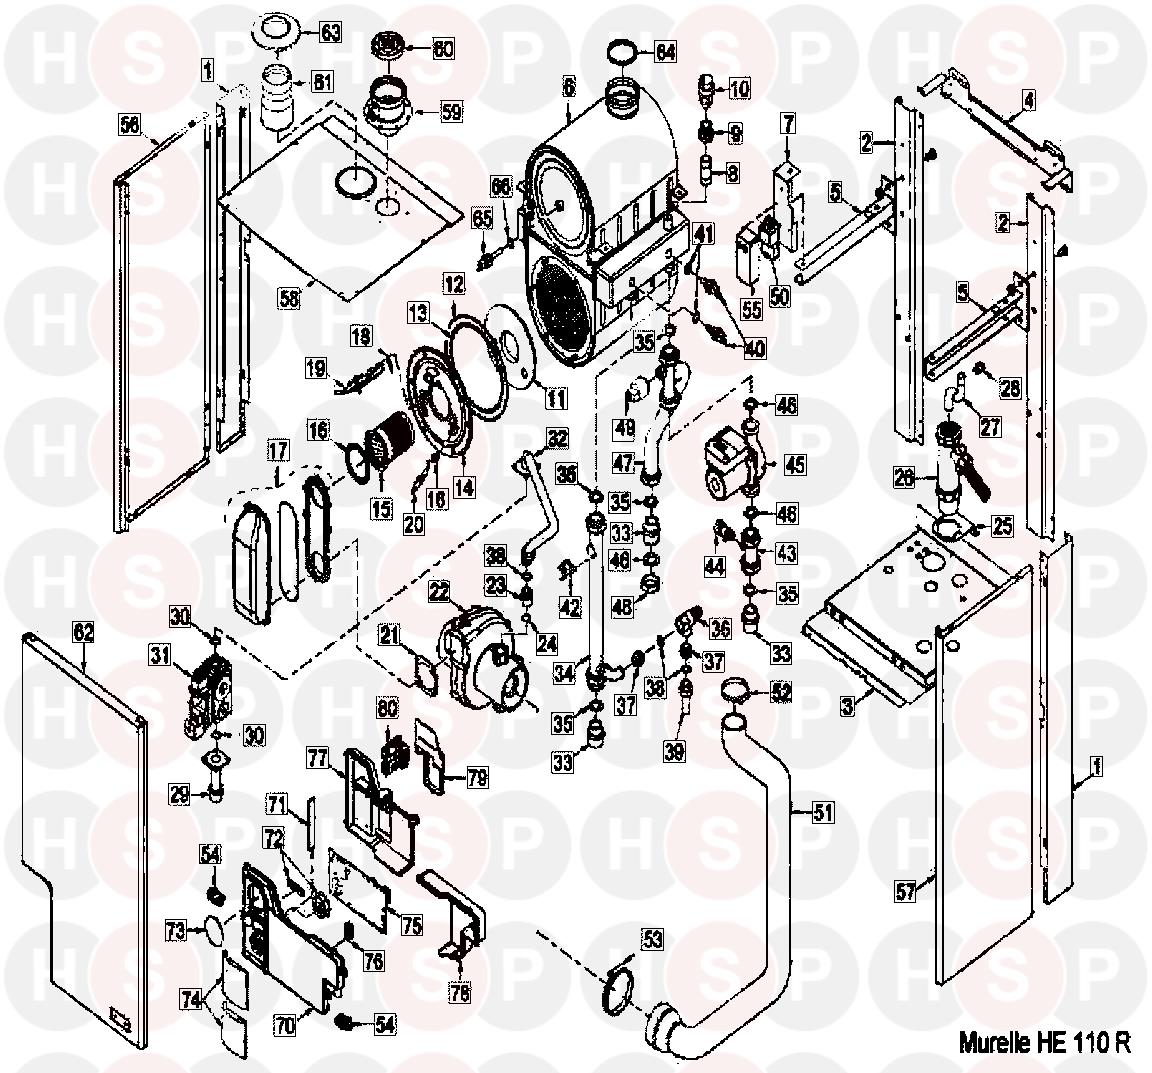 Munchkin Boiler Wiring Diagram likewise 66025 2 moreover 99 04 Jeep Ac Heater Vacuum Switch Wiring Harness Repair as well Mercury Sedan 1957 1958 Rear Window likewise 2004 Lincoln Aviator Fuse Diagram. on dorman wiring diagram